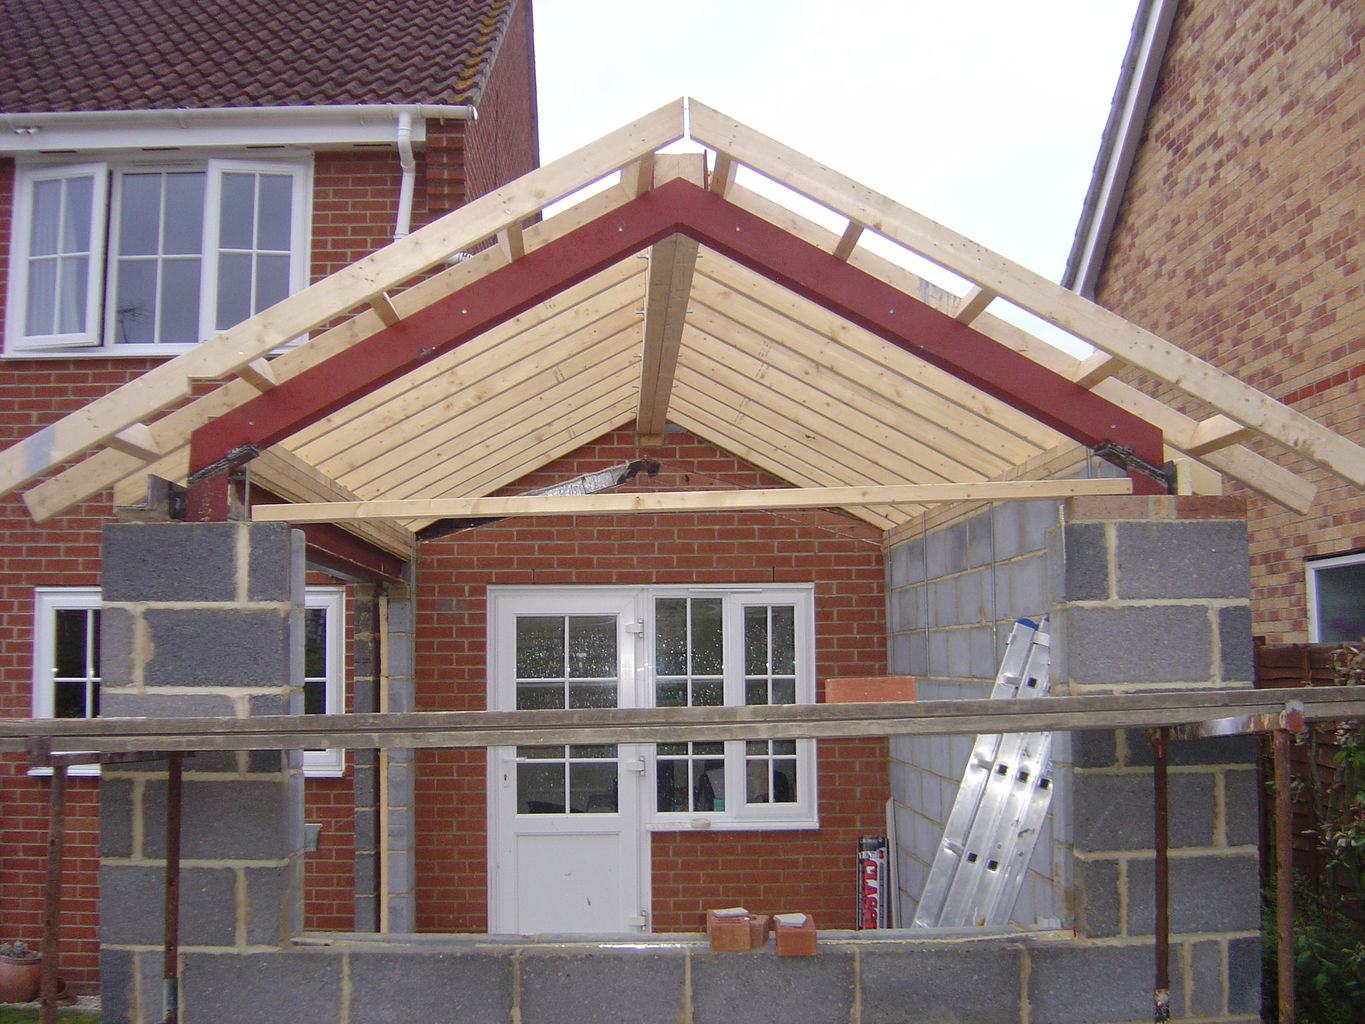 During construction. Bespoke steelwork to create vaulted roof format and large openings. & Alex Masheder BA (Hons) Dip Arch Dip EEB ARB Registered Architect ... memphite.com